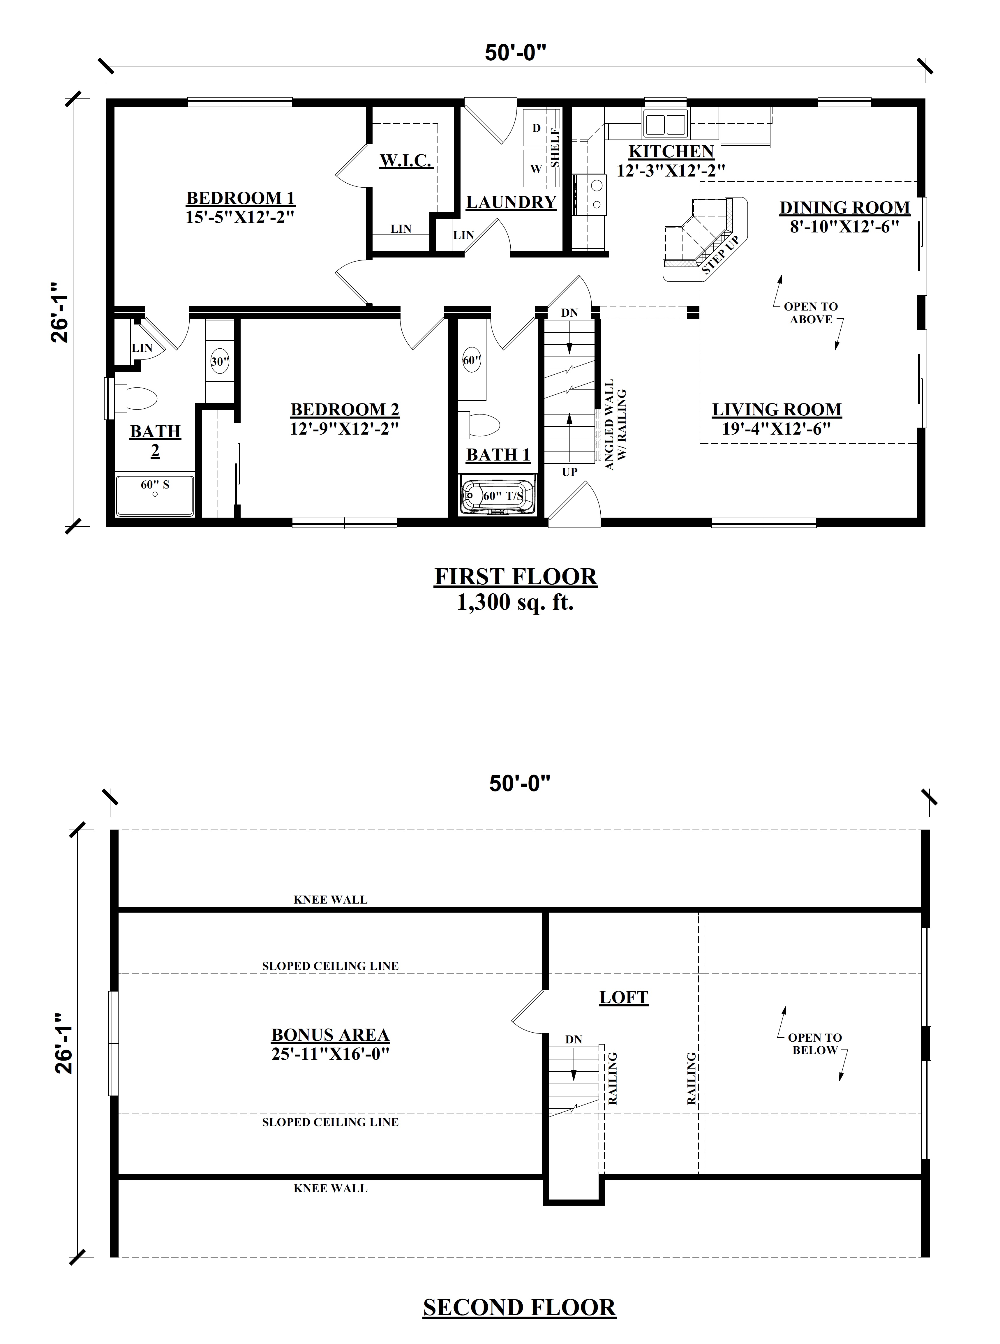 We Chalet Modular Floor Plans For You To Choose From A Chalet Home Also Called A Swiss Chalet Modular Home Is On Modular Floor Plans Floor Plans Modular Homes